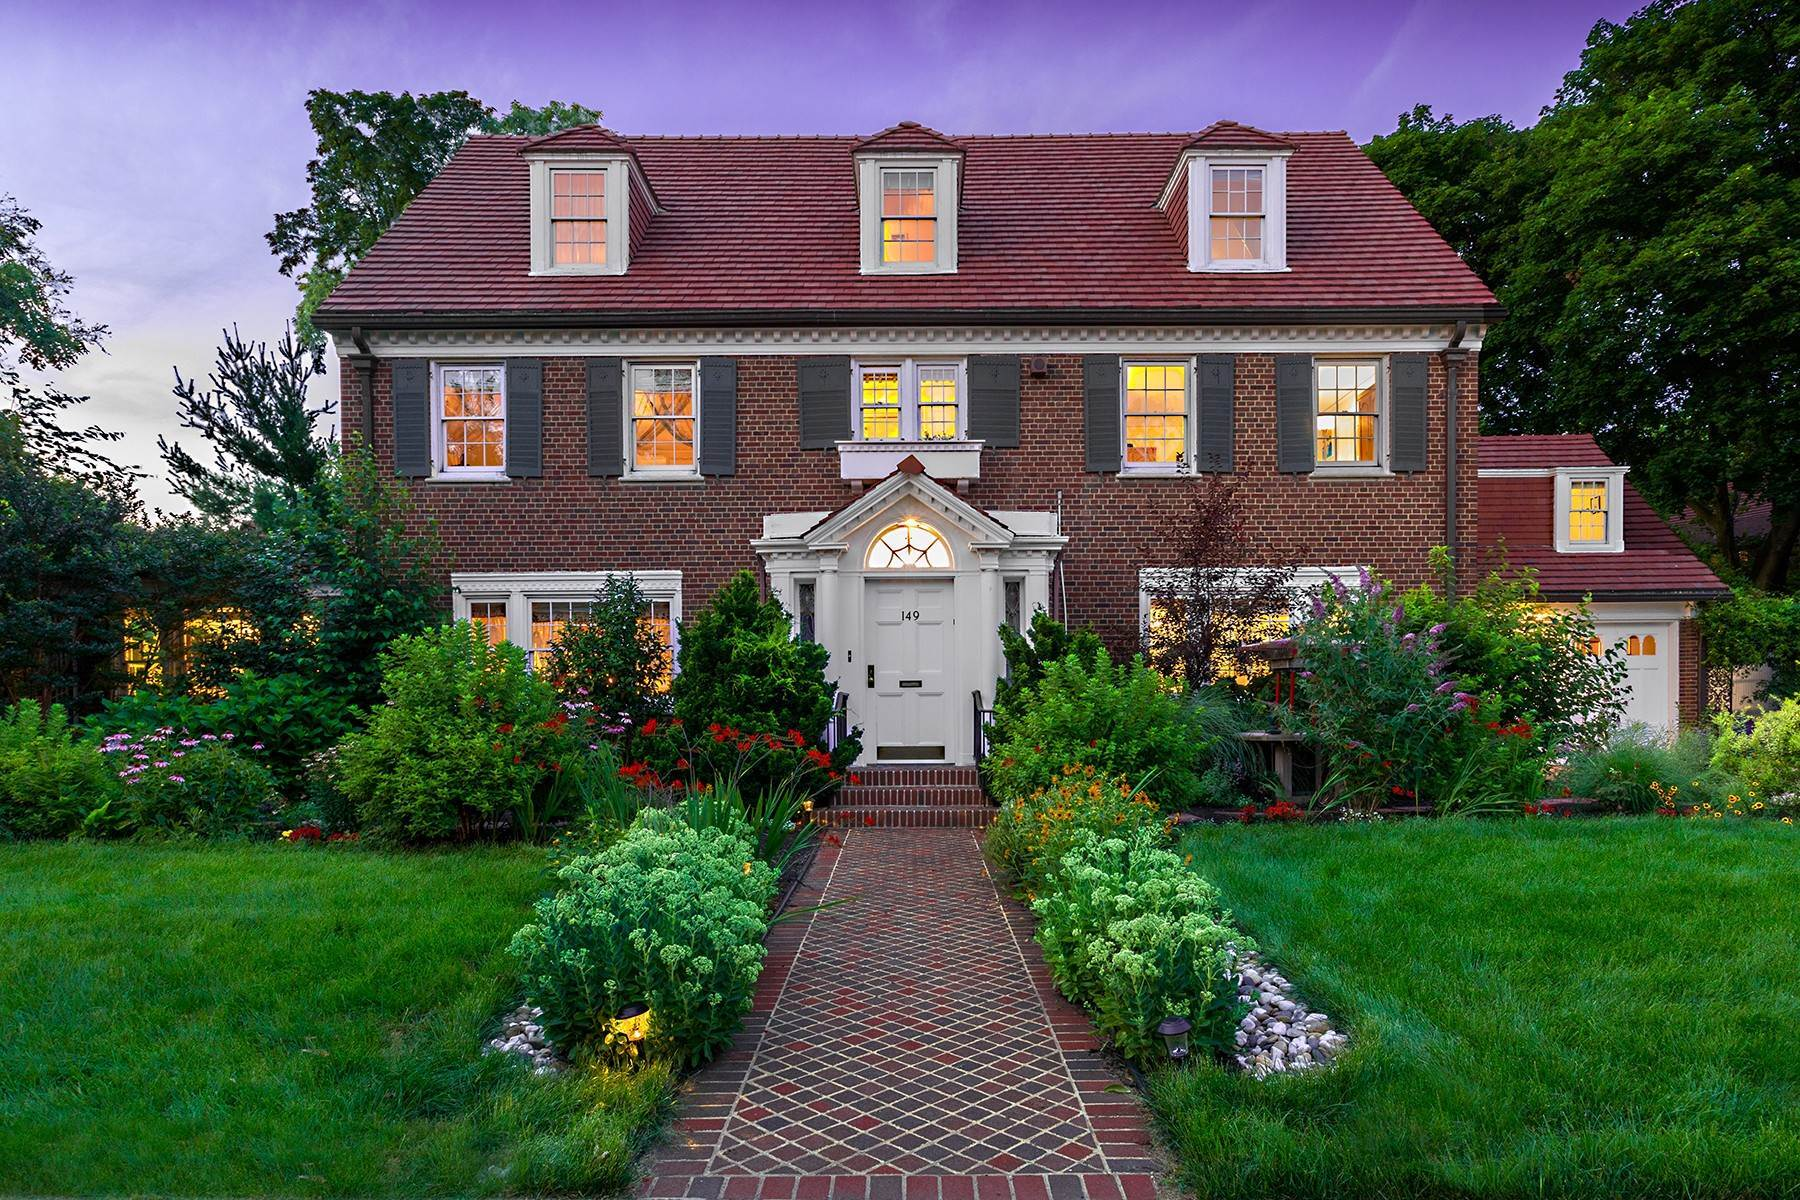 Single Family Homes for Sale at 'VIRTUAL PERFECTION' 149 Slocum Crescent, Forest Hills Gardens, Forest Hills, New York 11375 United States